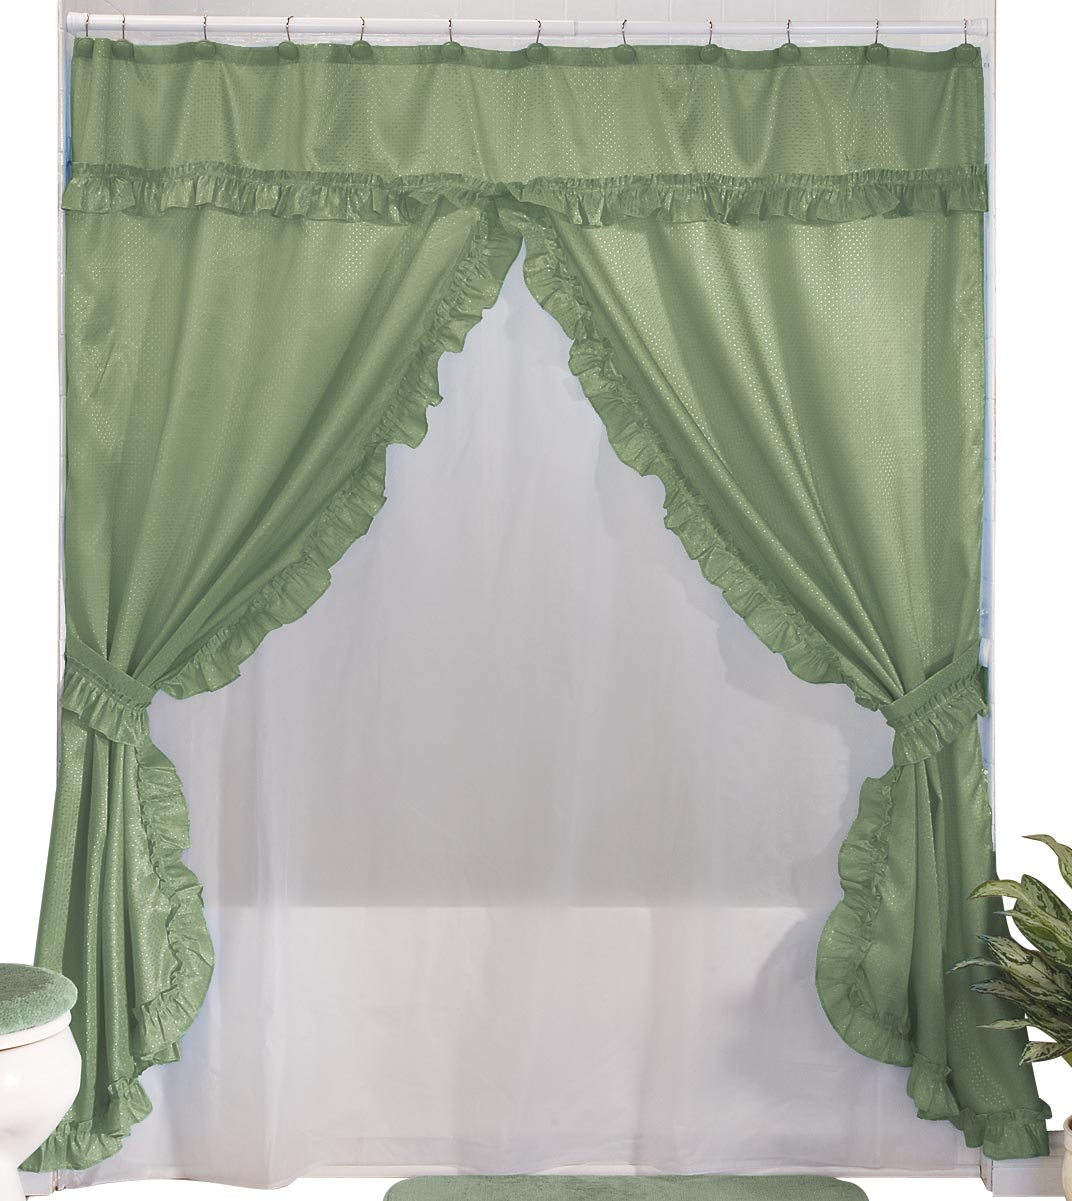 Walterdrake Double Swag Shower Curtains With Valance Ebay